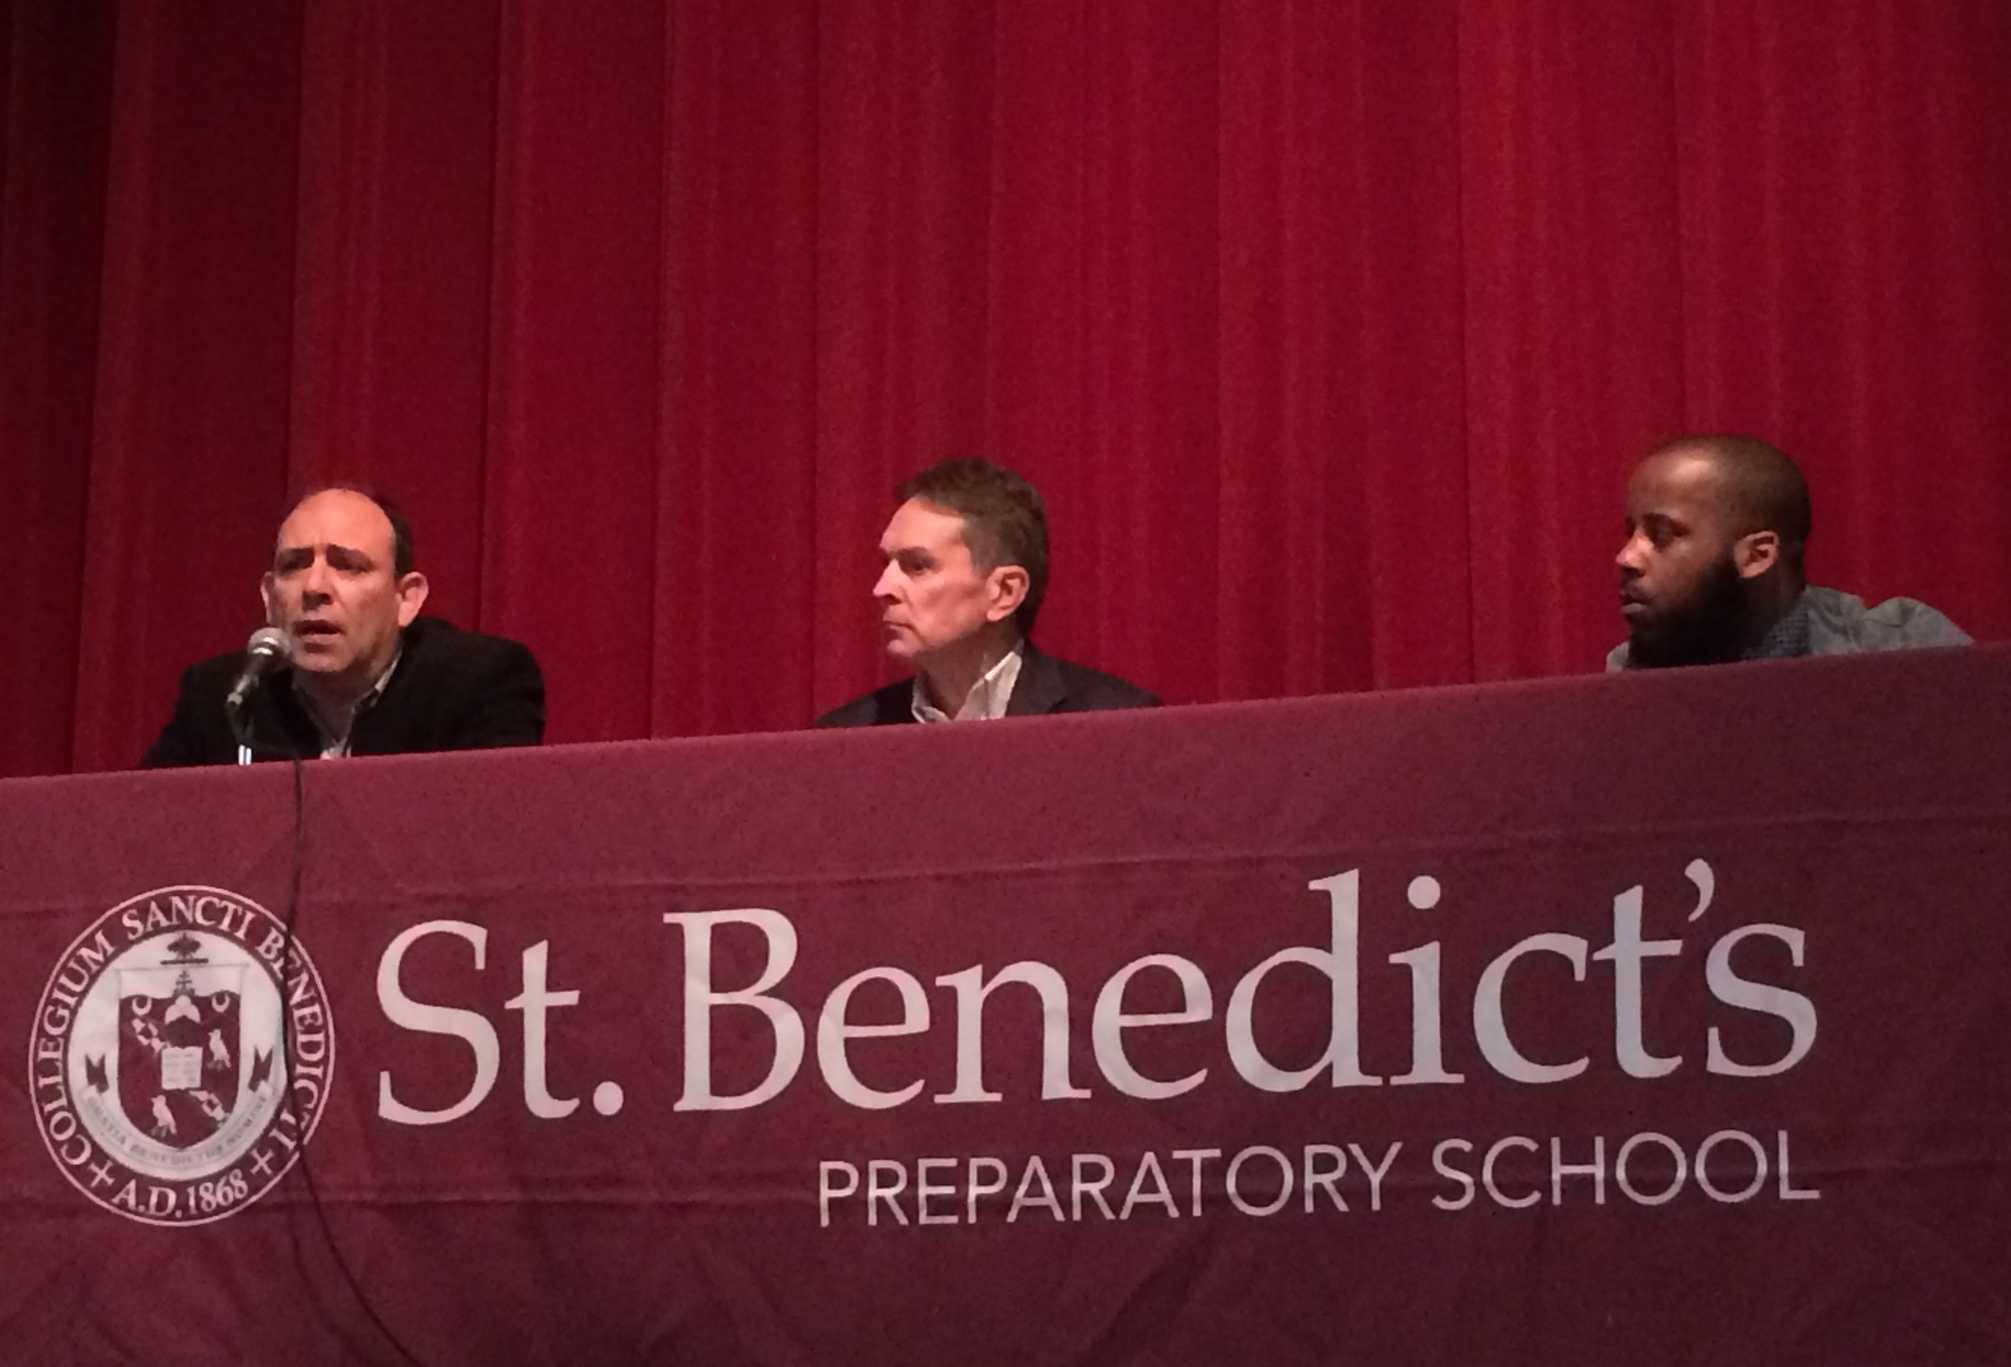 Theatre production company owner Daryl Stewart, CFO of Greenwich Capital Ben Carpenter, and construction business owner Carlos Farinhas'85 relating their business experiences to seniors, Jan. 23.